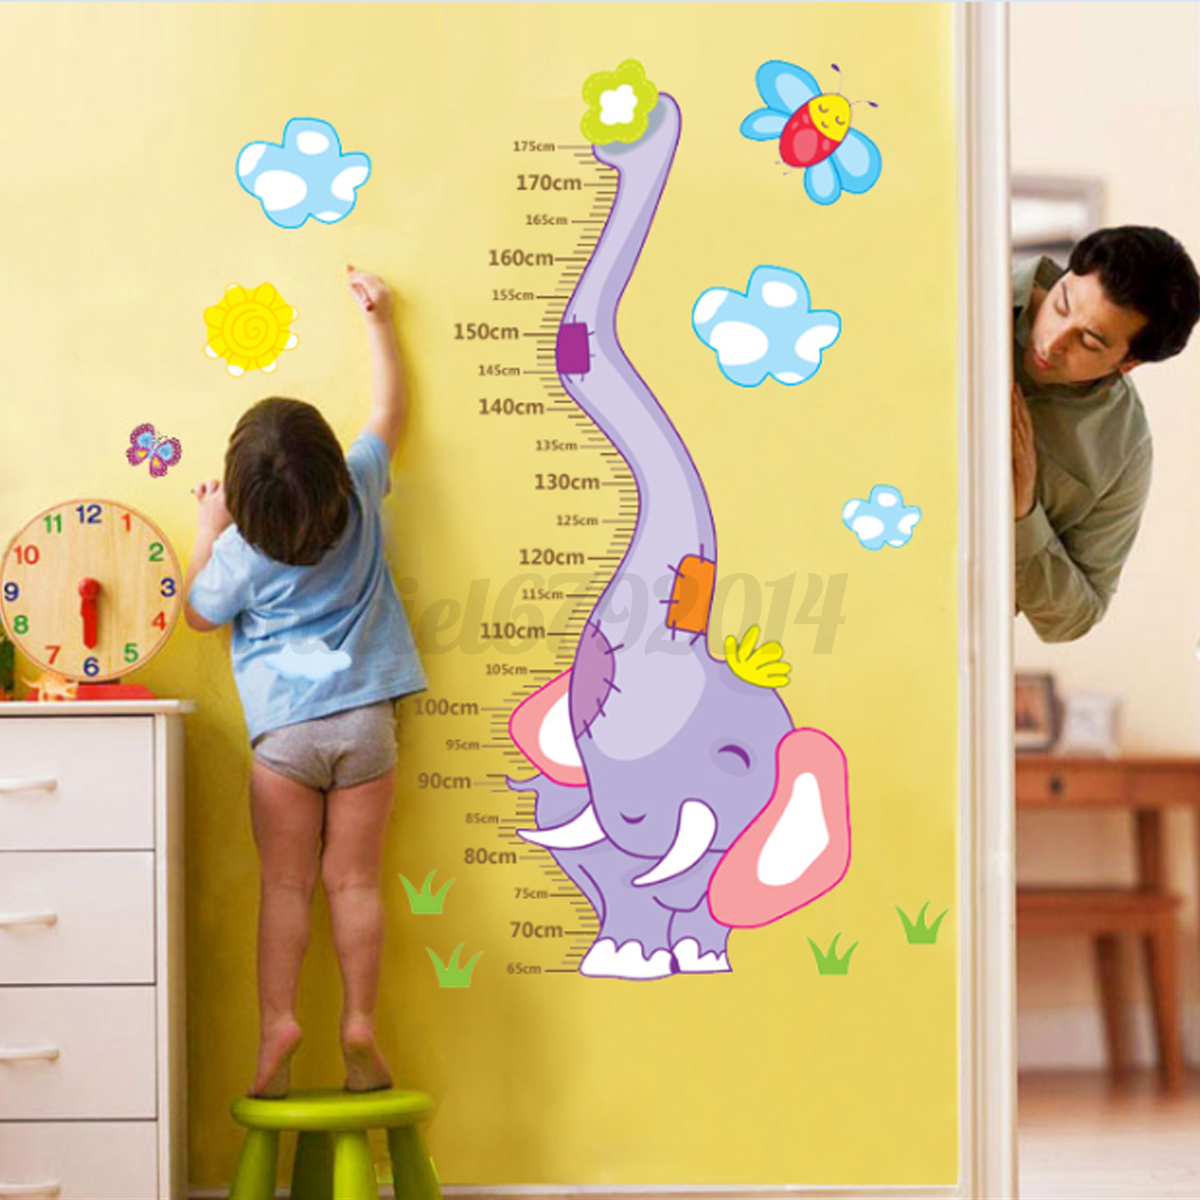 children height growth chart measure wall sticker kids ruler wall vinyl decal sticker growth chart diy wooden